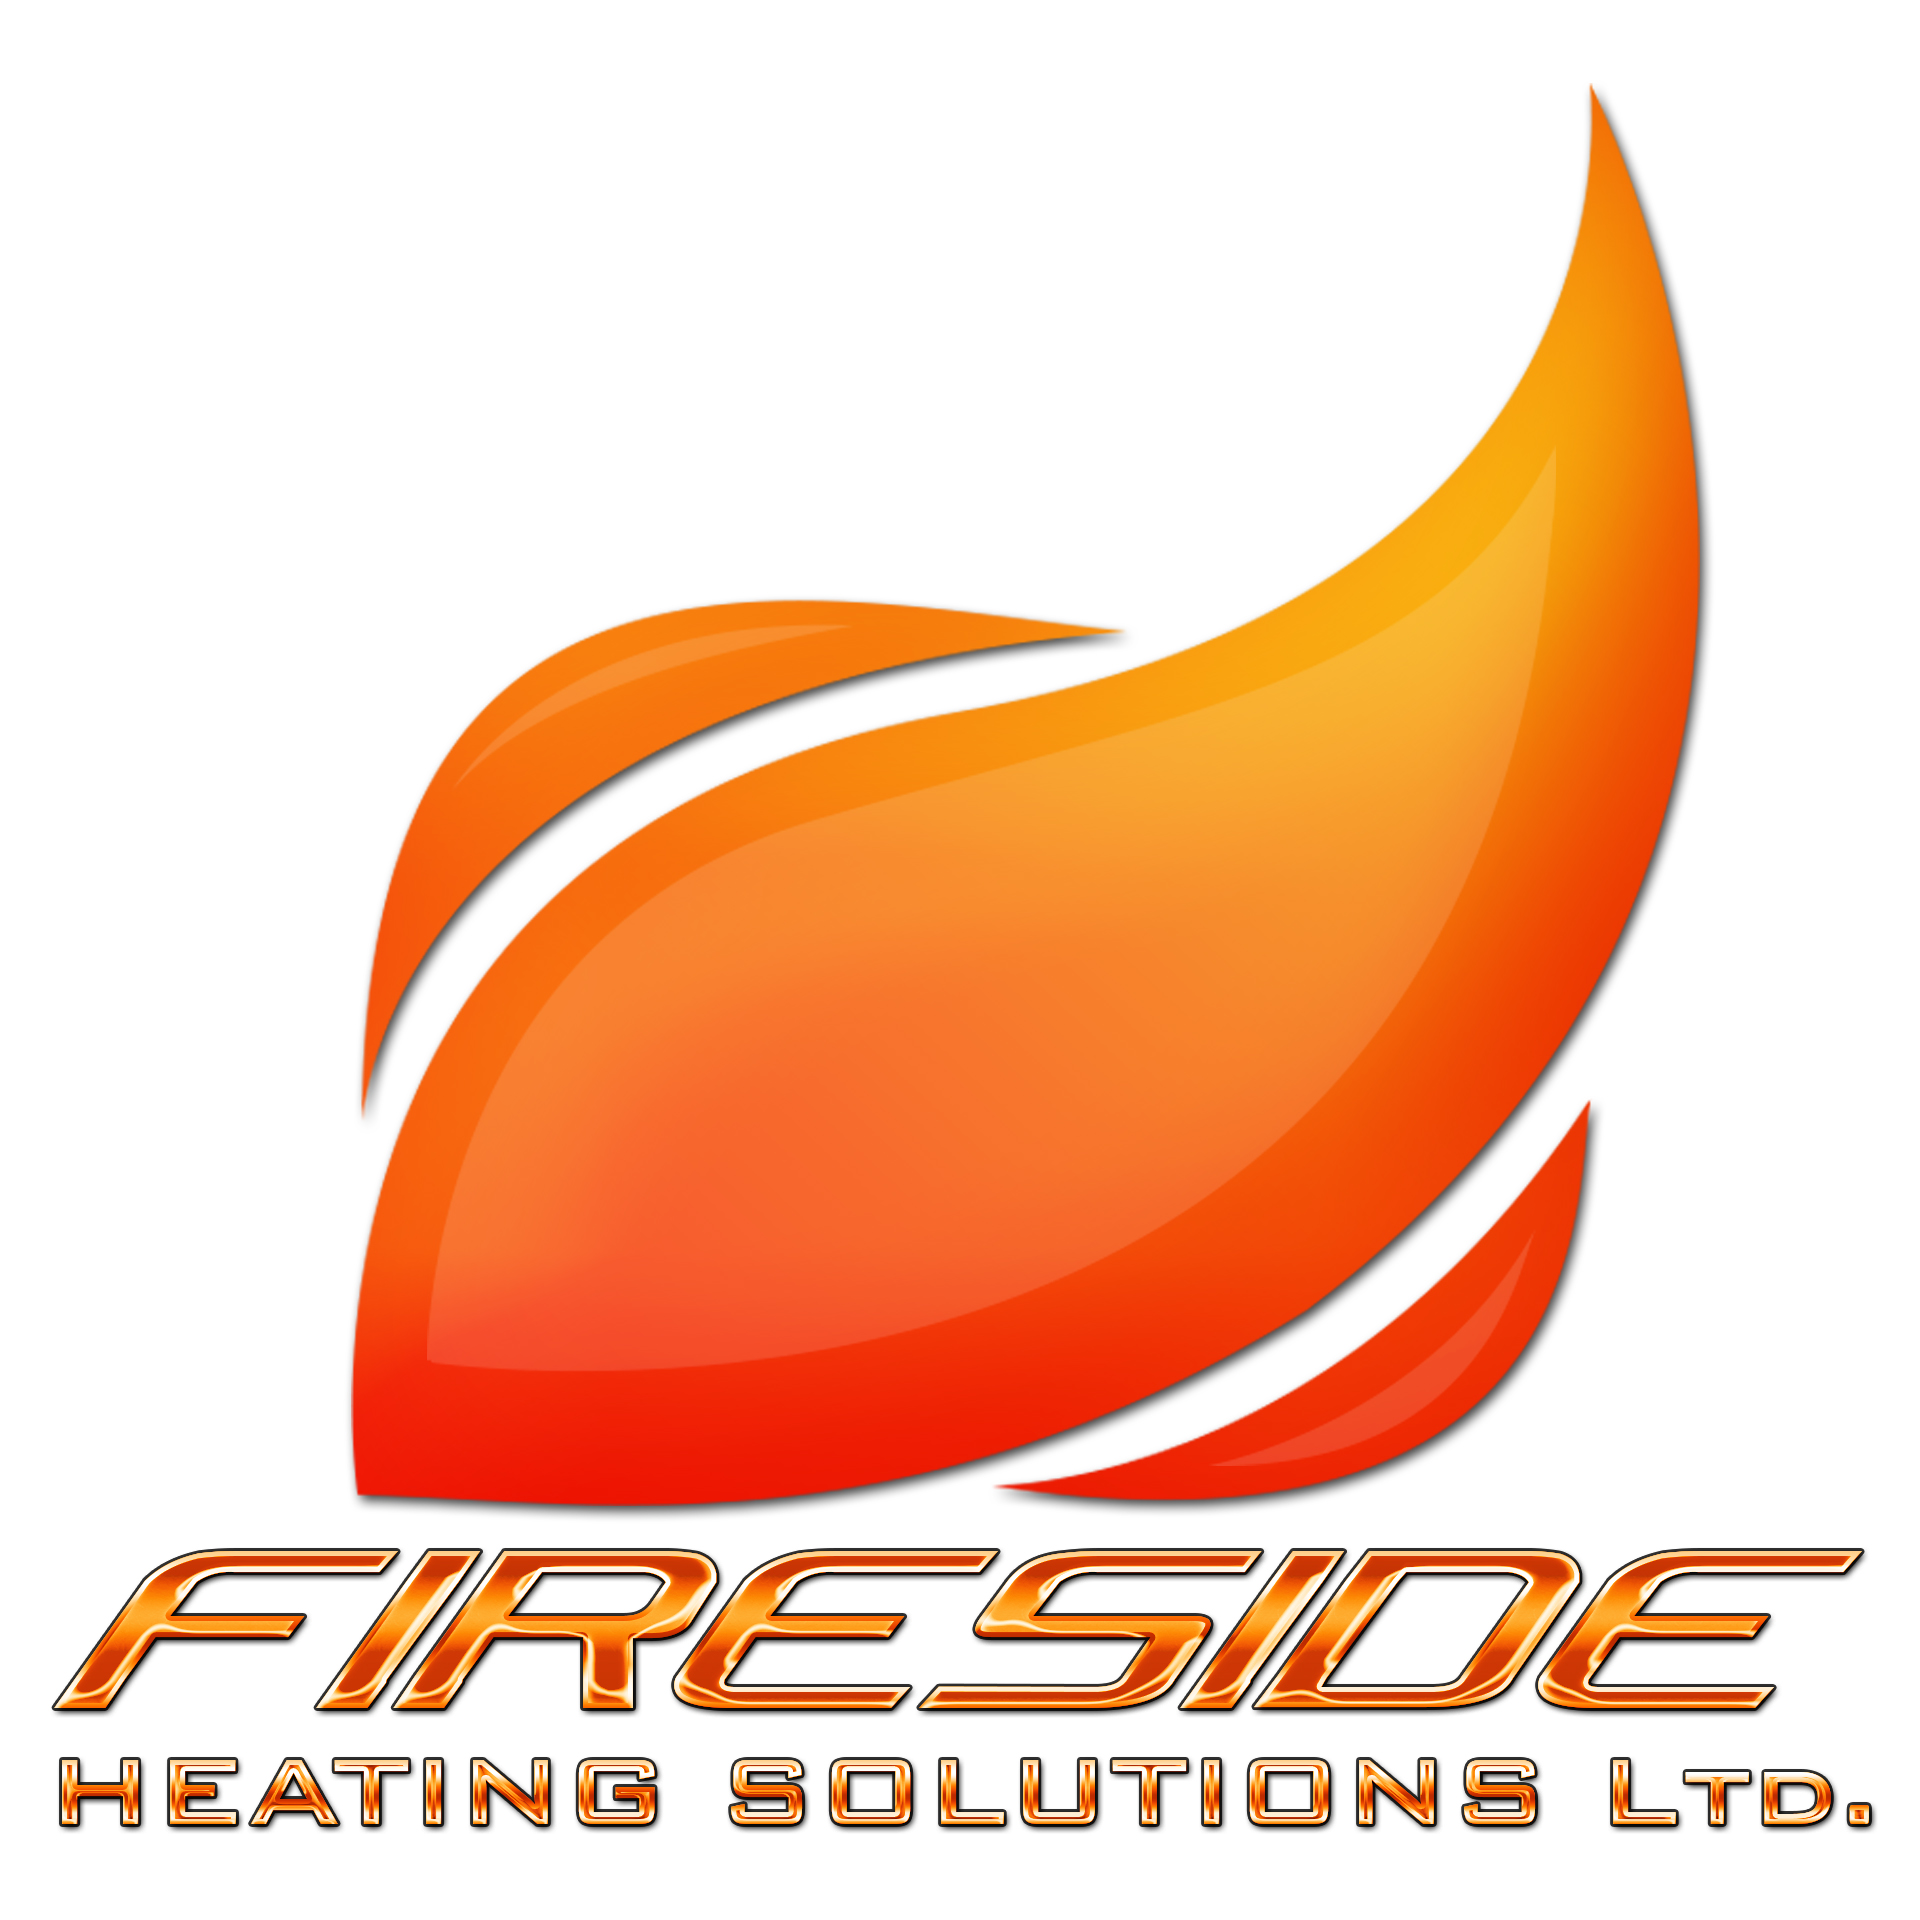 Logo Design by chAnDOS - Entry No. 121 in the Logo Design Contest Creative Logo Design for Fireside Heating Solutions Ltd..